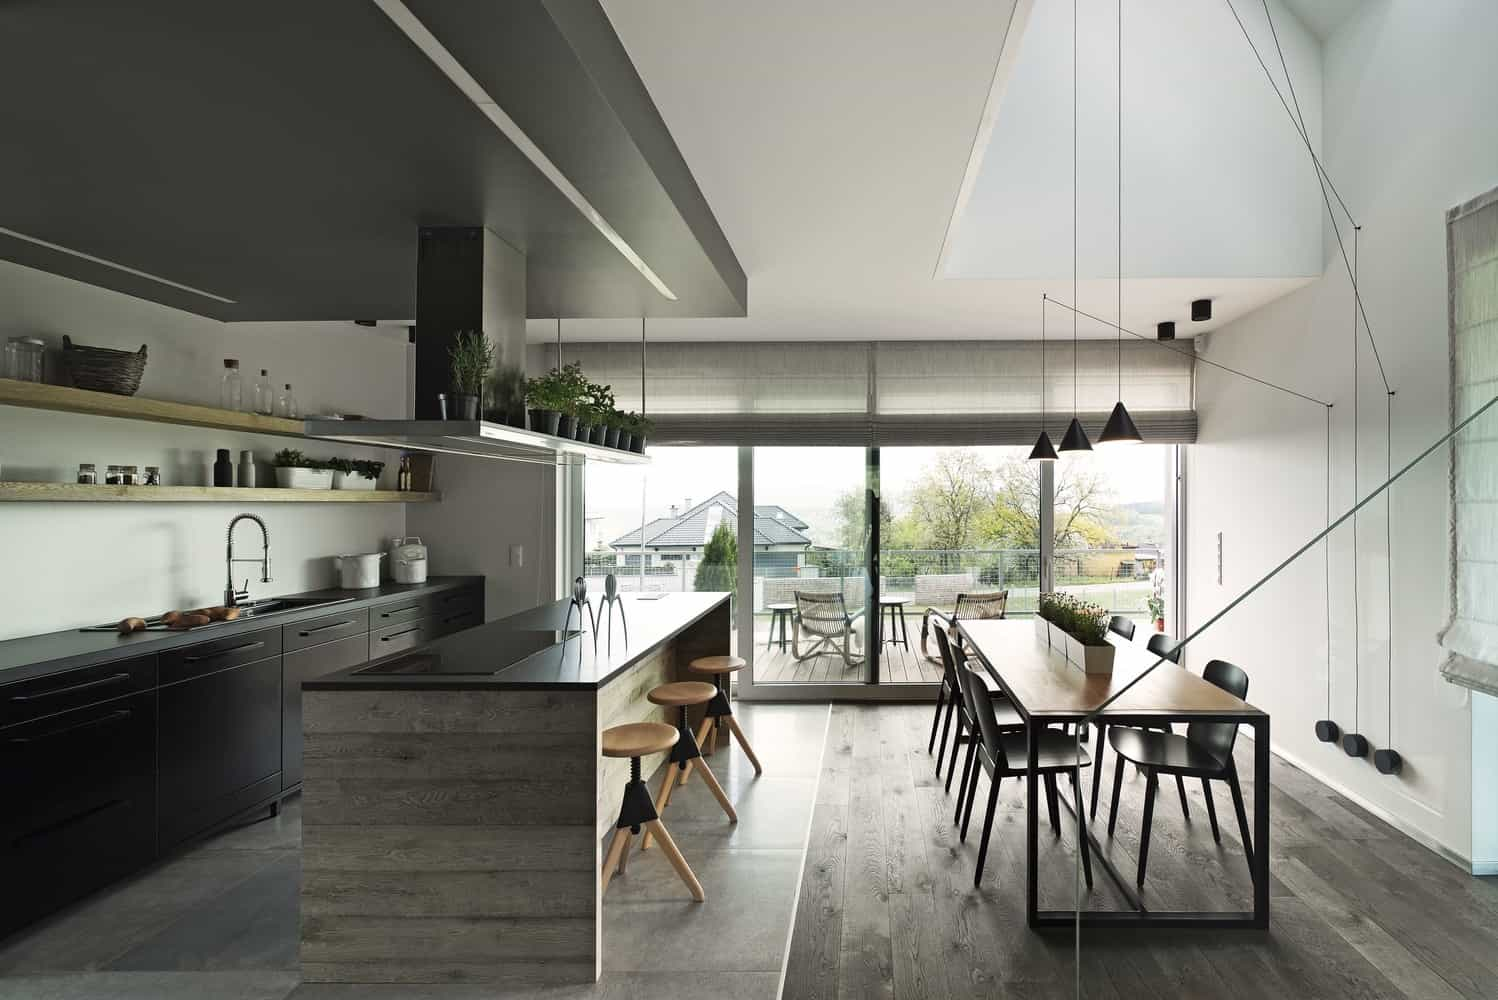 Beautiful Utter Simplicity - House With a View by doomo (18)